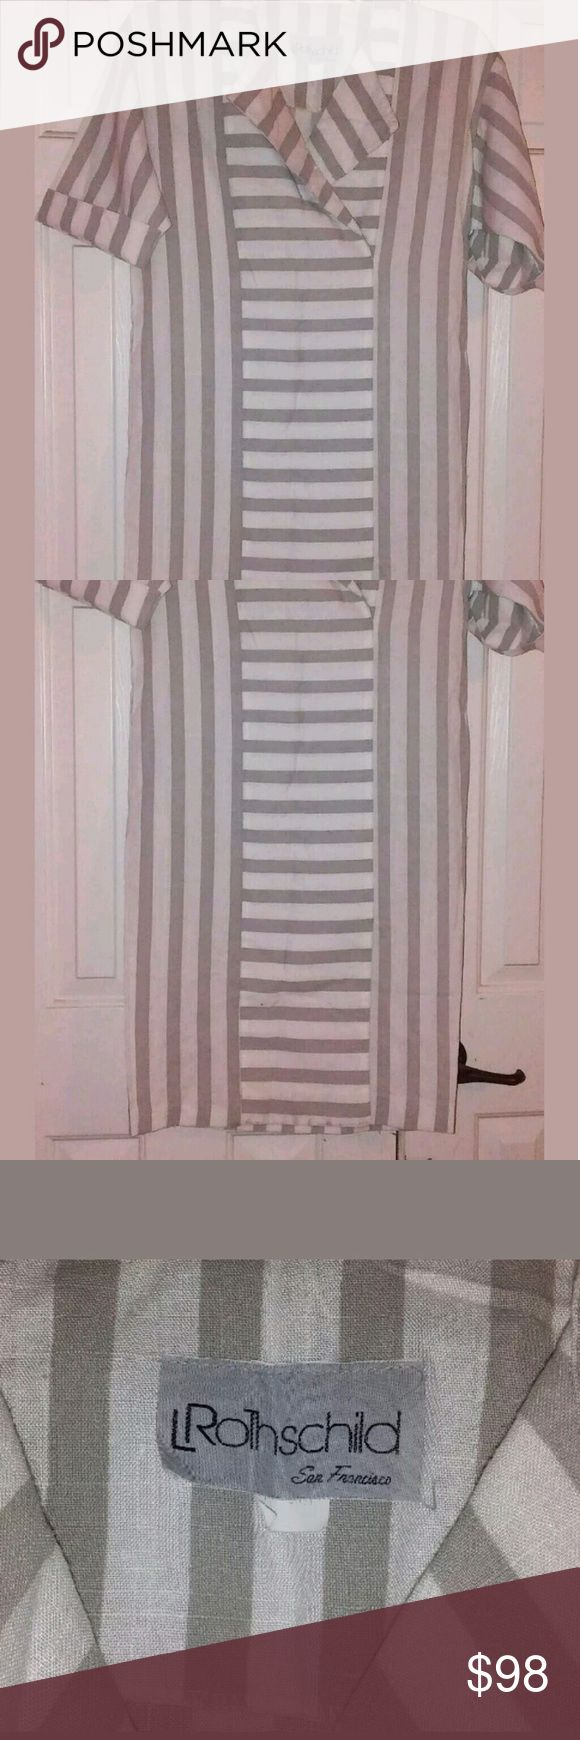 L. Rothschild San Francisco Vintage 80s Dress Sz 4 This is a classic style dress from L Rothschild. Vintage 80s style, Cream colored and camel striped fabric that is 50% Rayon and 50% Polyester. (feels like linen) Sleeves can either be cuffed or left full length. DRY CLEAN ONLY. Back and front sides are all vertical stripes and the plackard down the front is horizontal stripes, same fabric. There are slitted side pockets at each side and a kick pleat in the front at the bottom of the center…